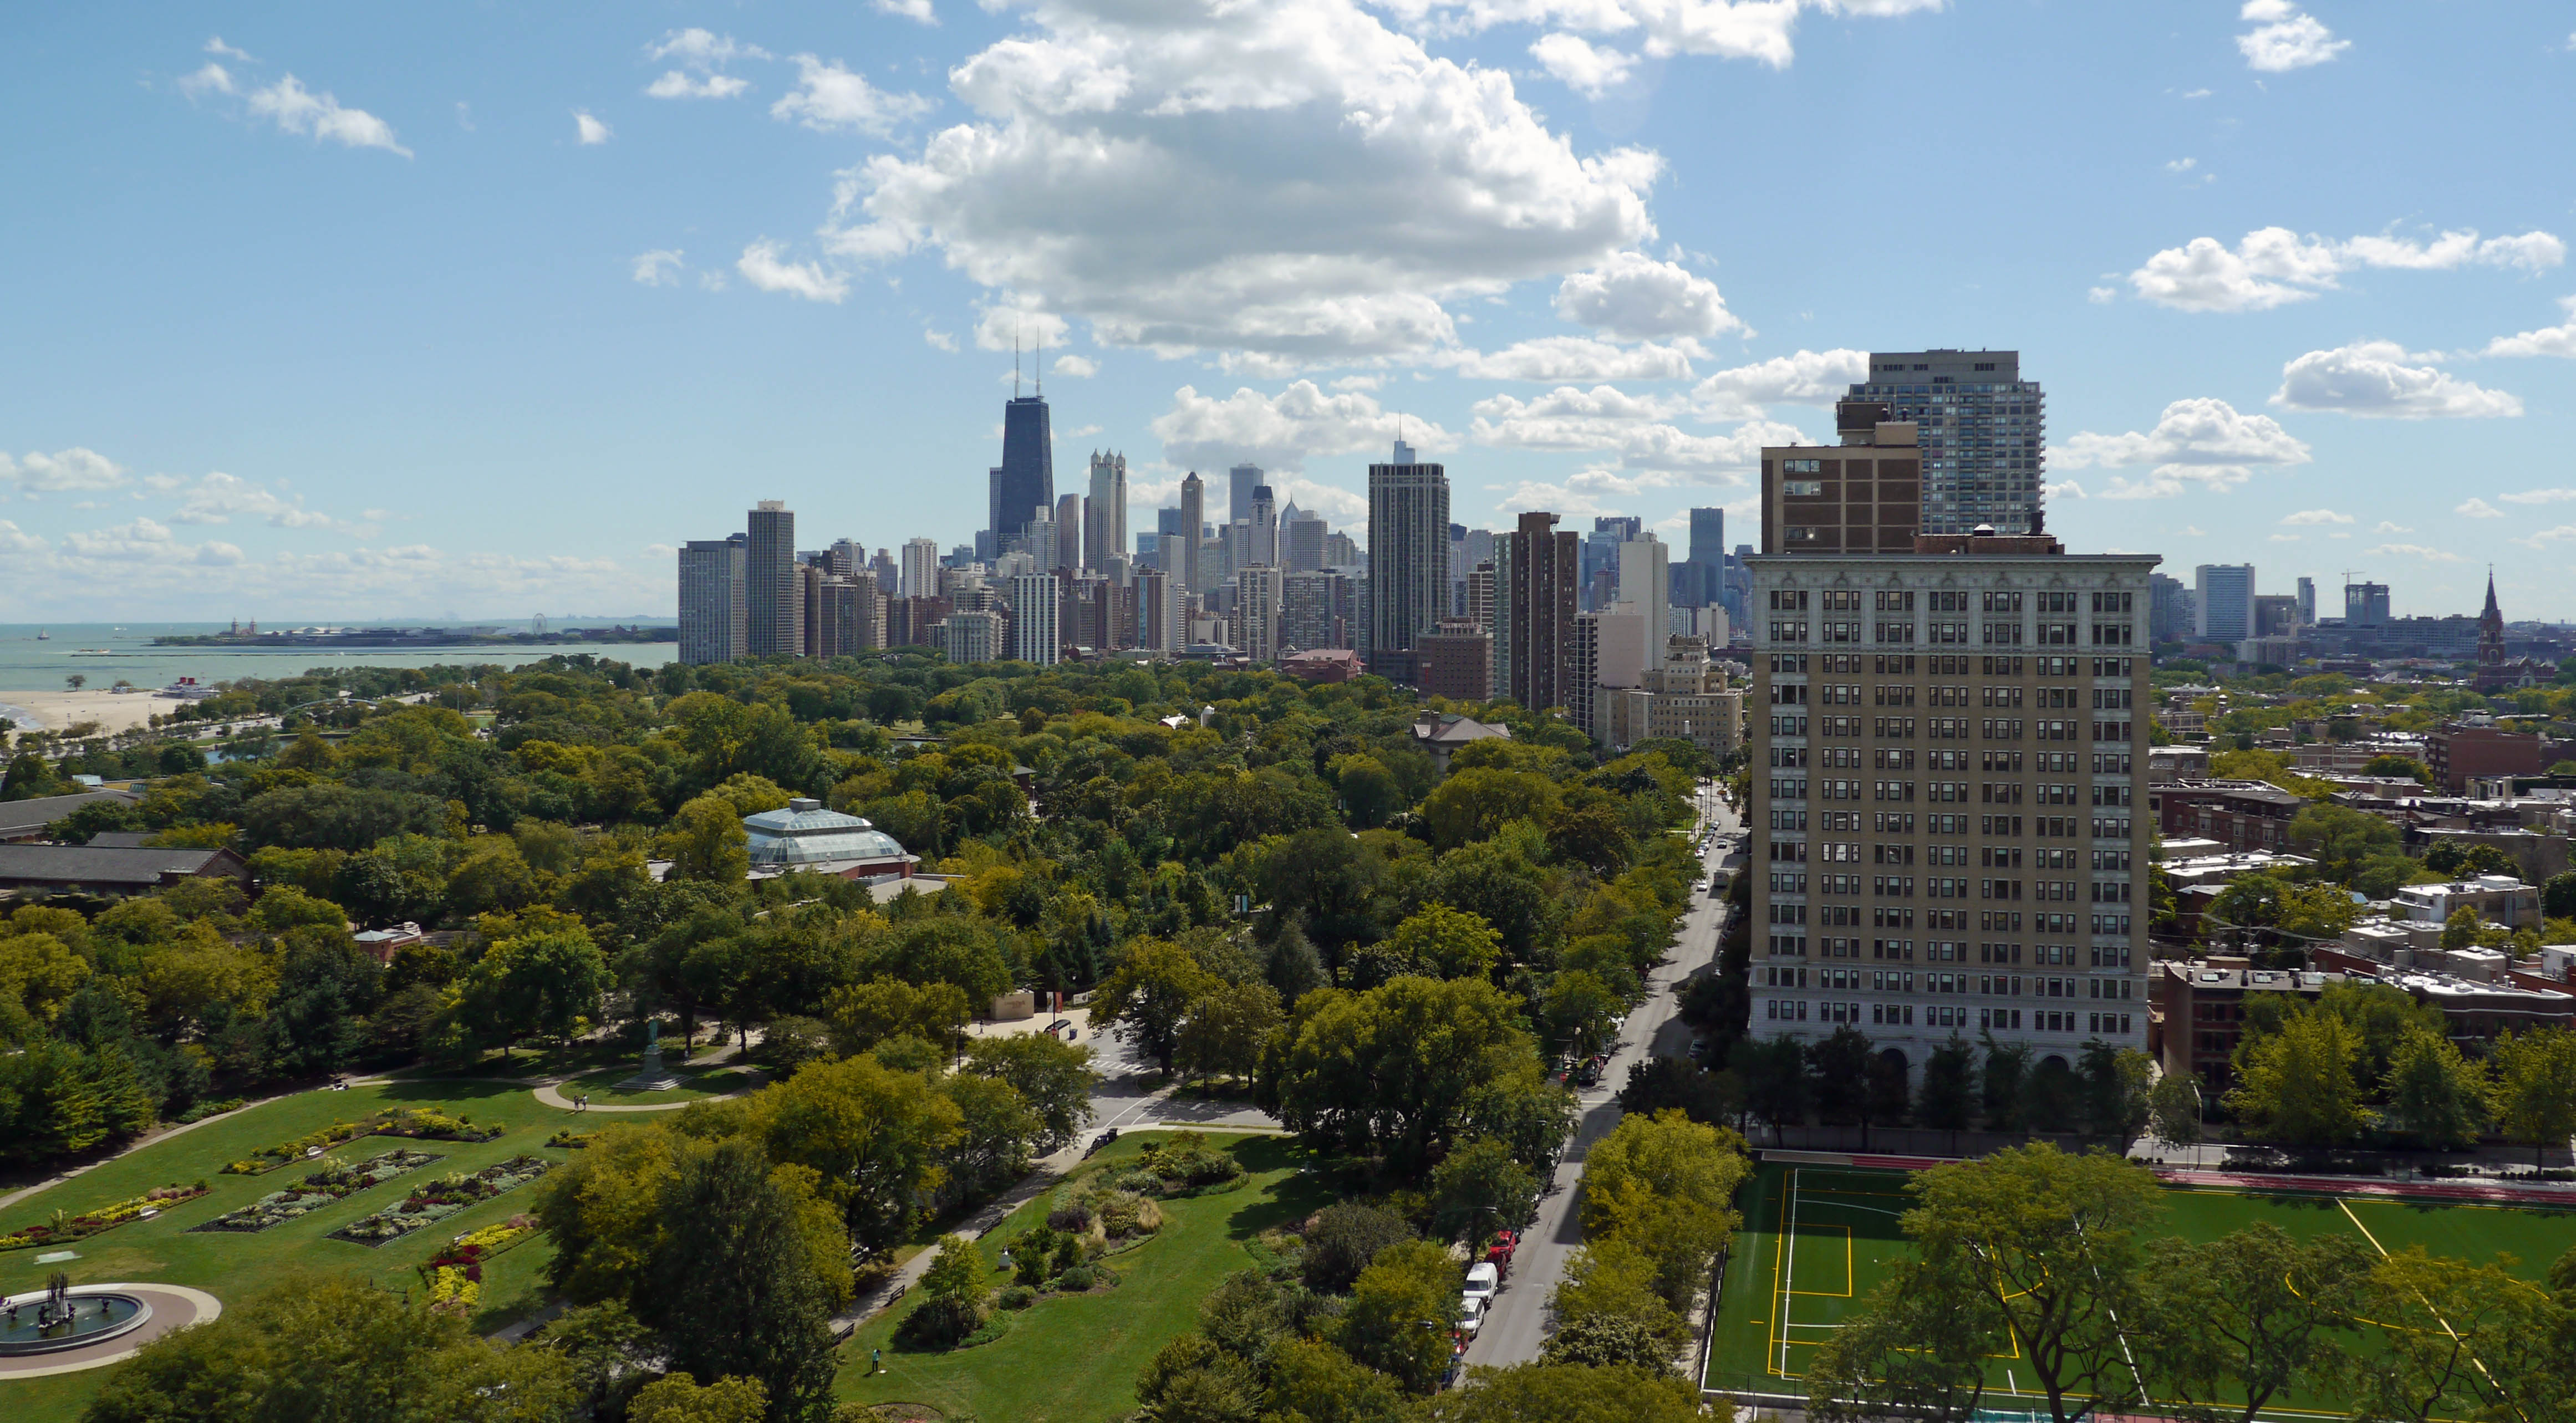 il yet visit bars rooftops over lh t lincoln hotel chicago isn season to rooftop bar view river